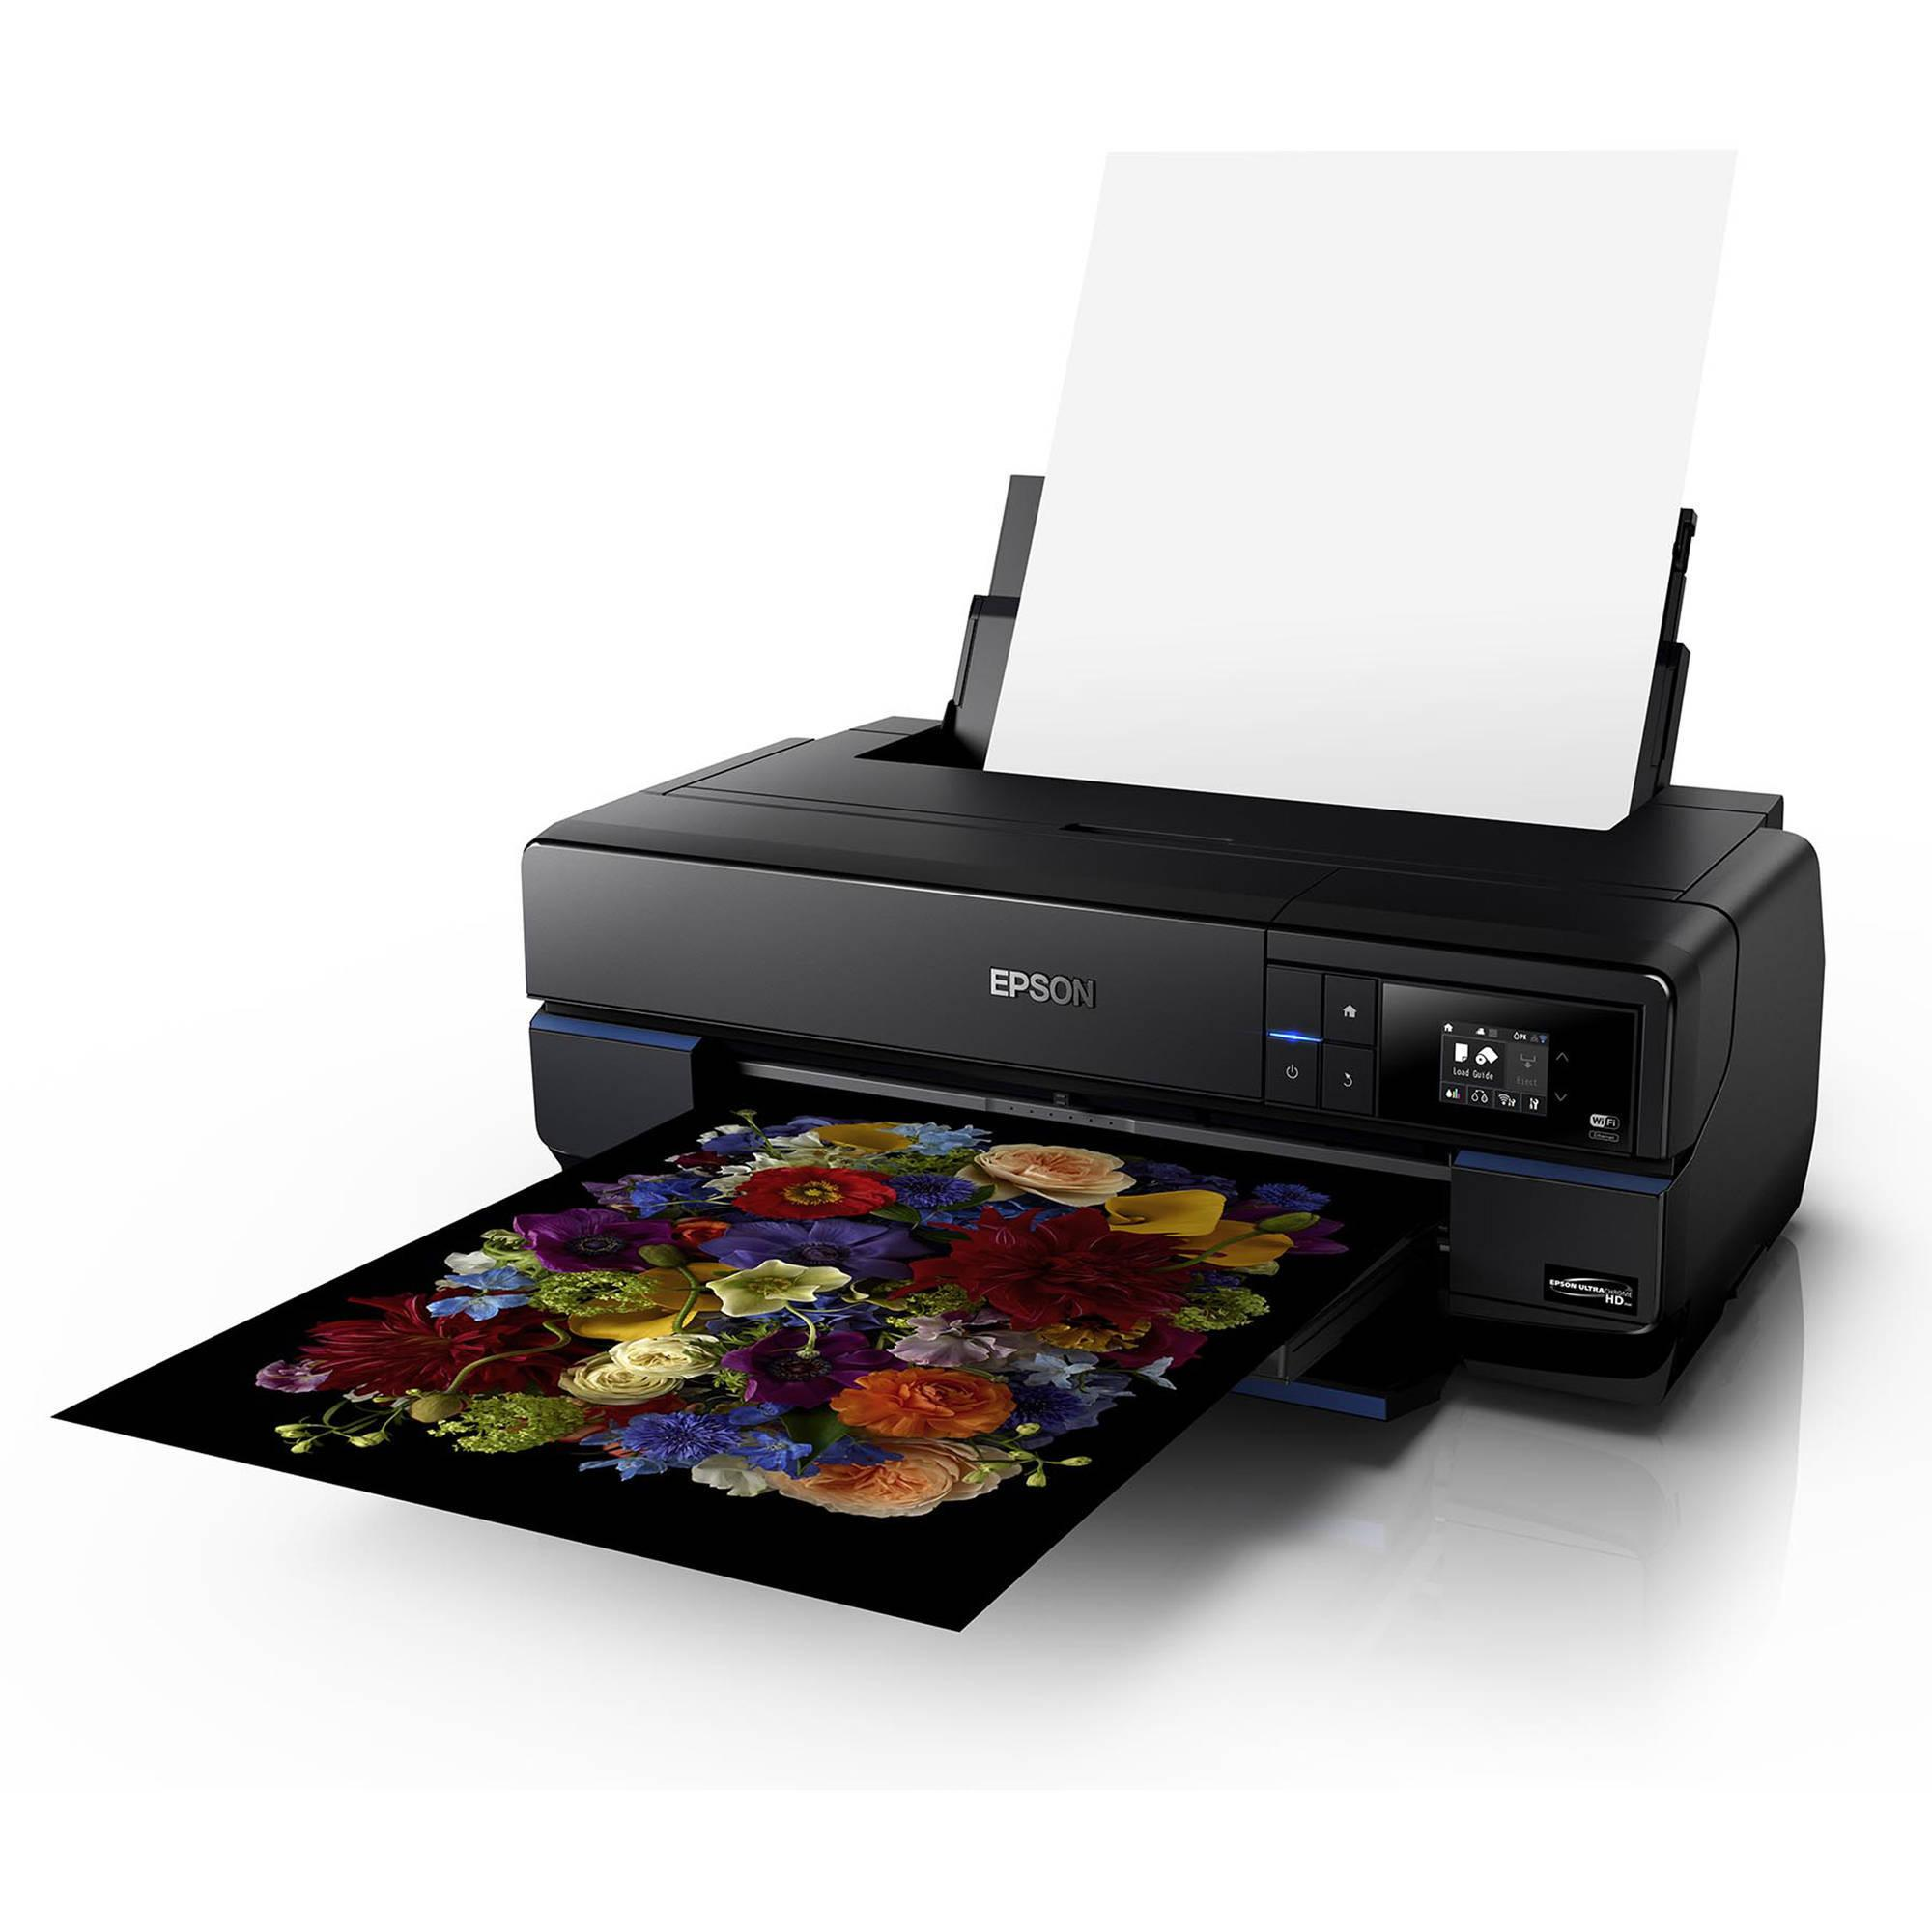 Epson SureColor P800 for art prints